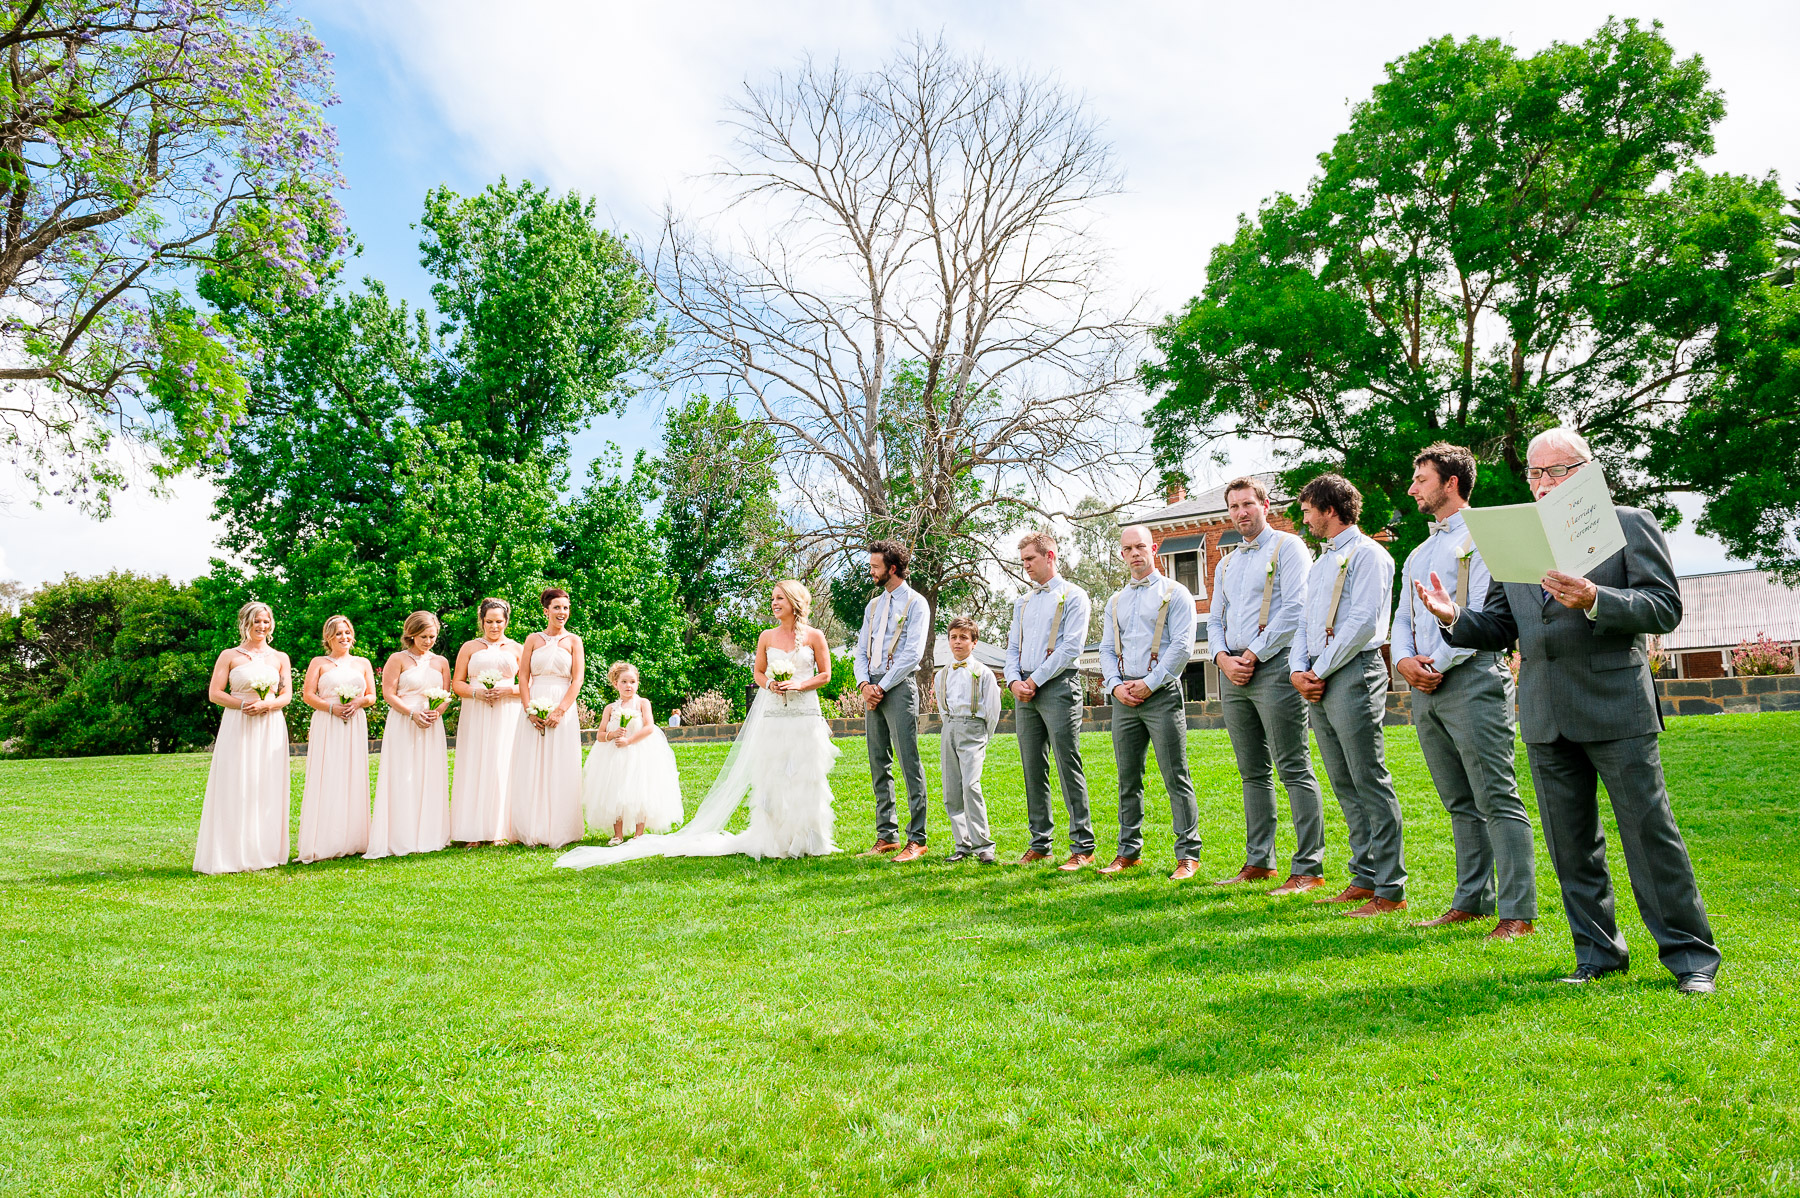 Justin_and_Jim_Best_Of_Wedding_Photography-12.jpg